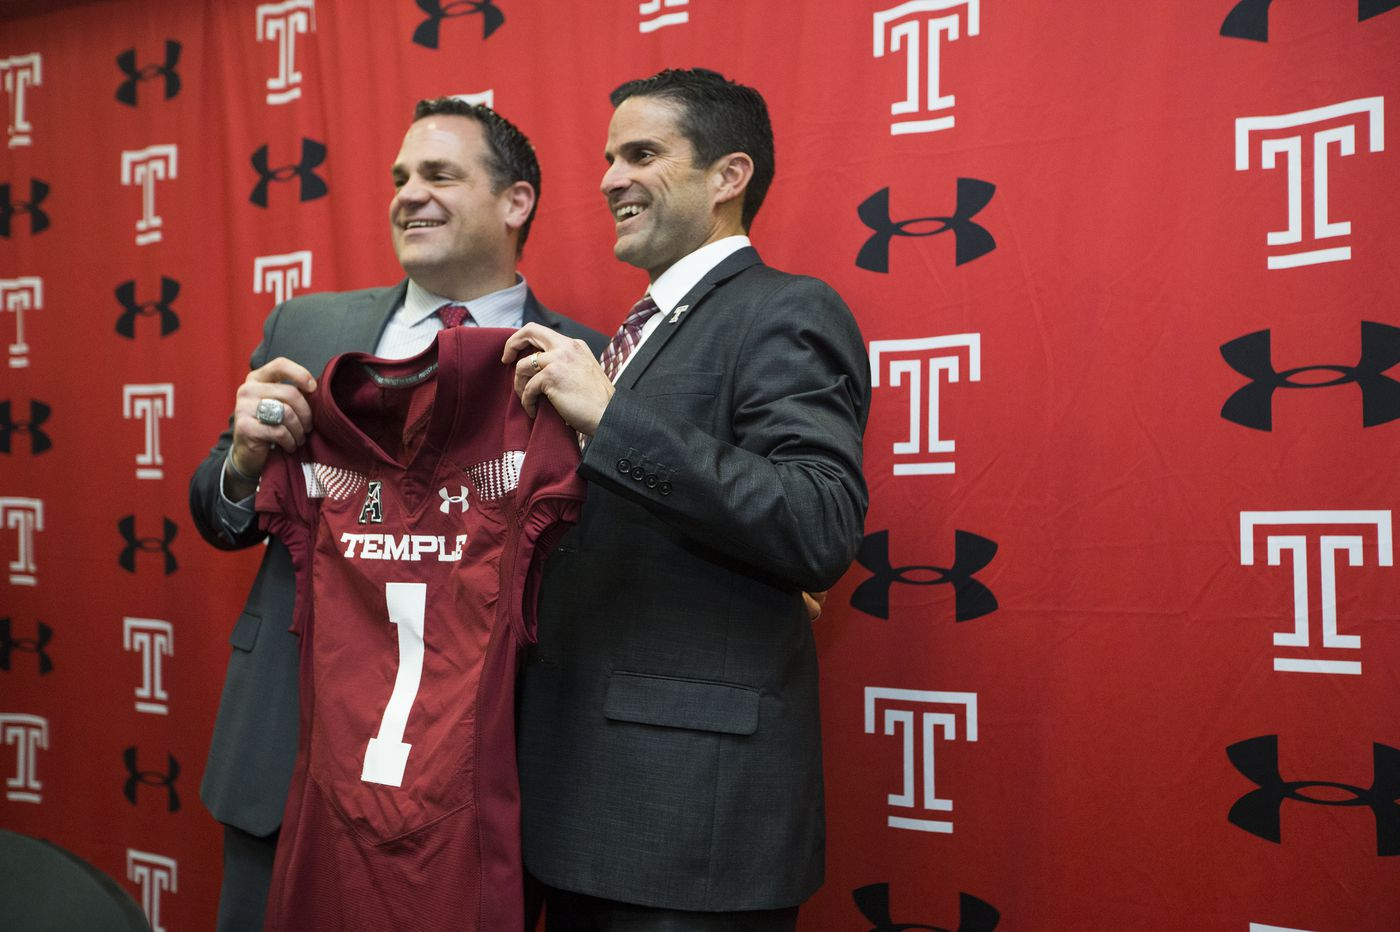 After the Manny Diaz era at Temple, where do the Owls go from here? | Mike Jensen